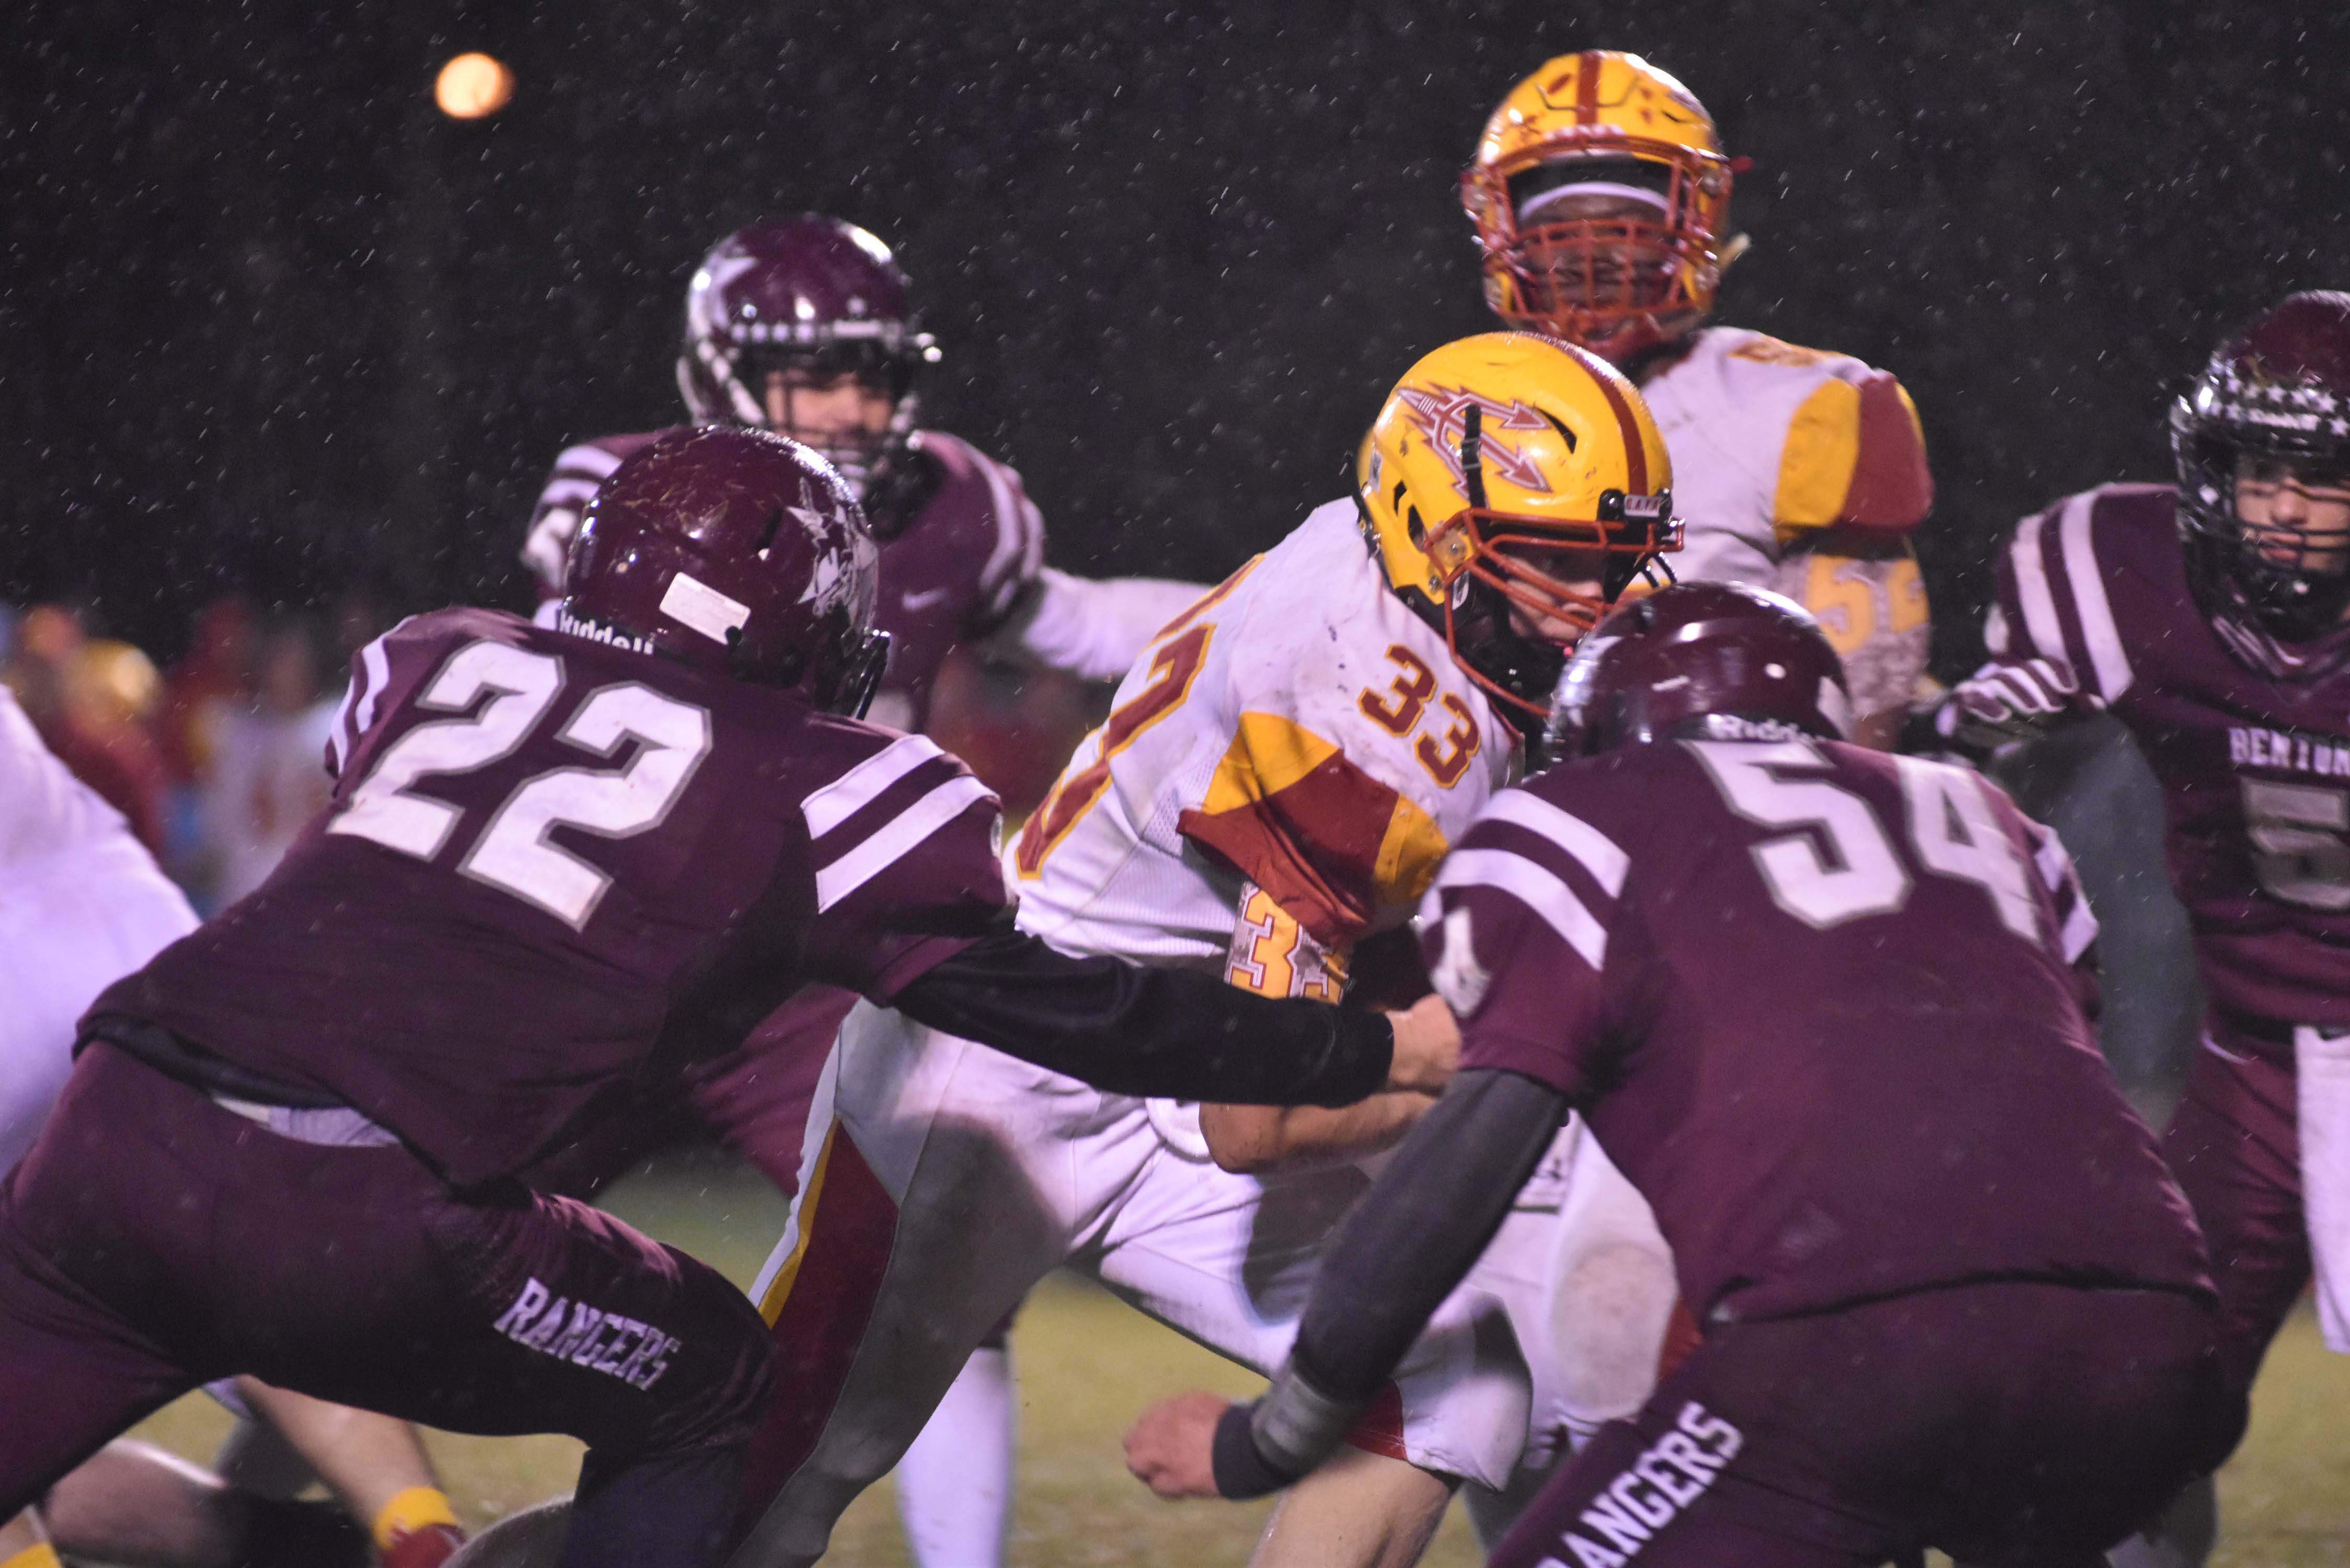 RICK HAYES PHOTOMurphysboro's Aiden McNitt runs up the middle and is met by Benton defenders Jadon Stark (22) and Logan Williams (54). McNitt ran for 68 yards, including an 18-yard touchdown.